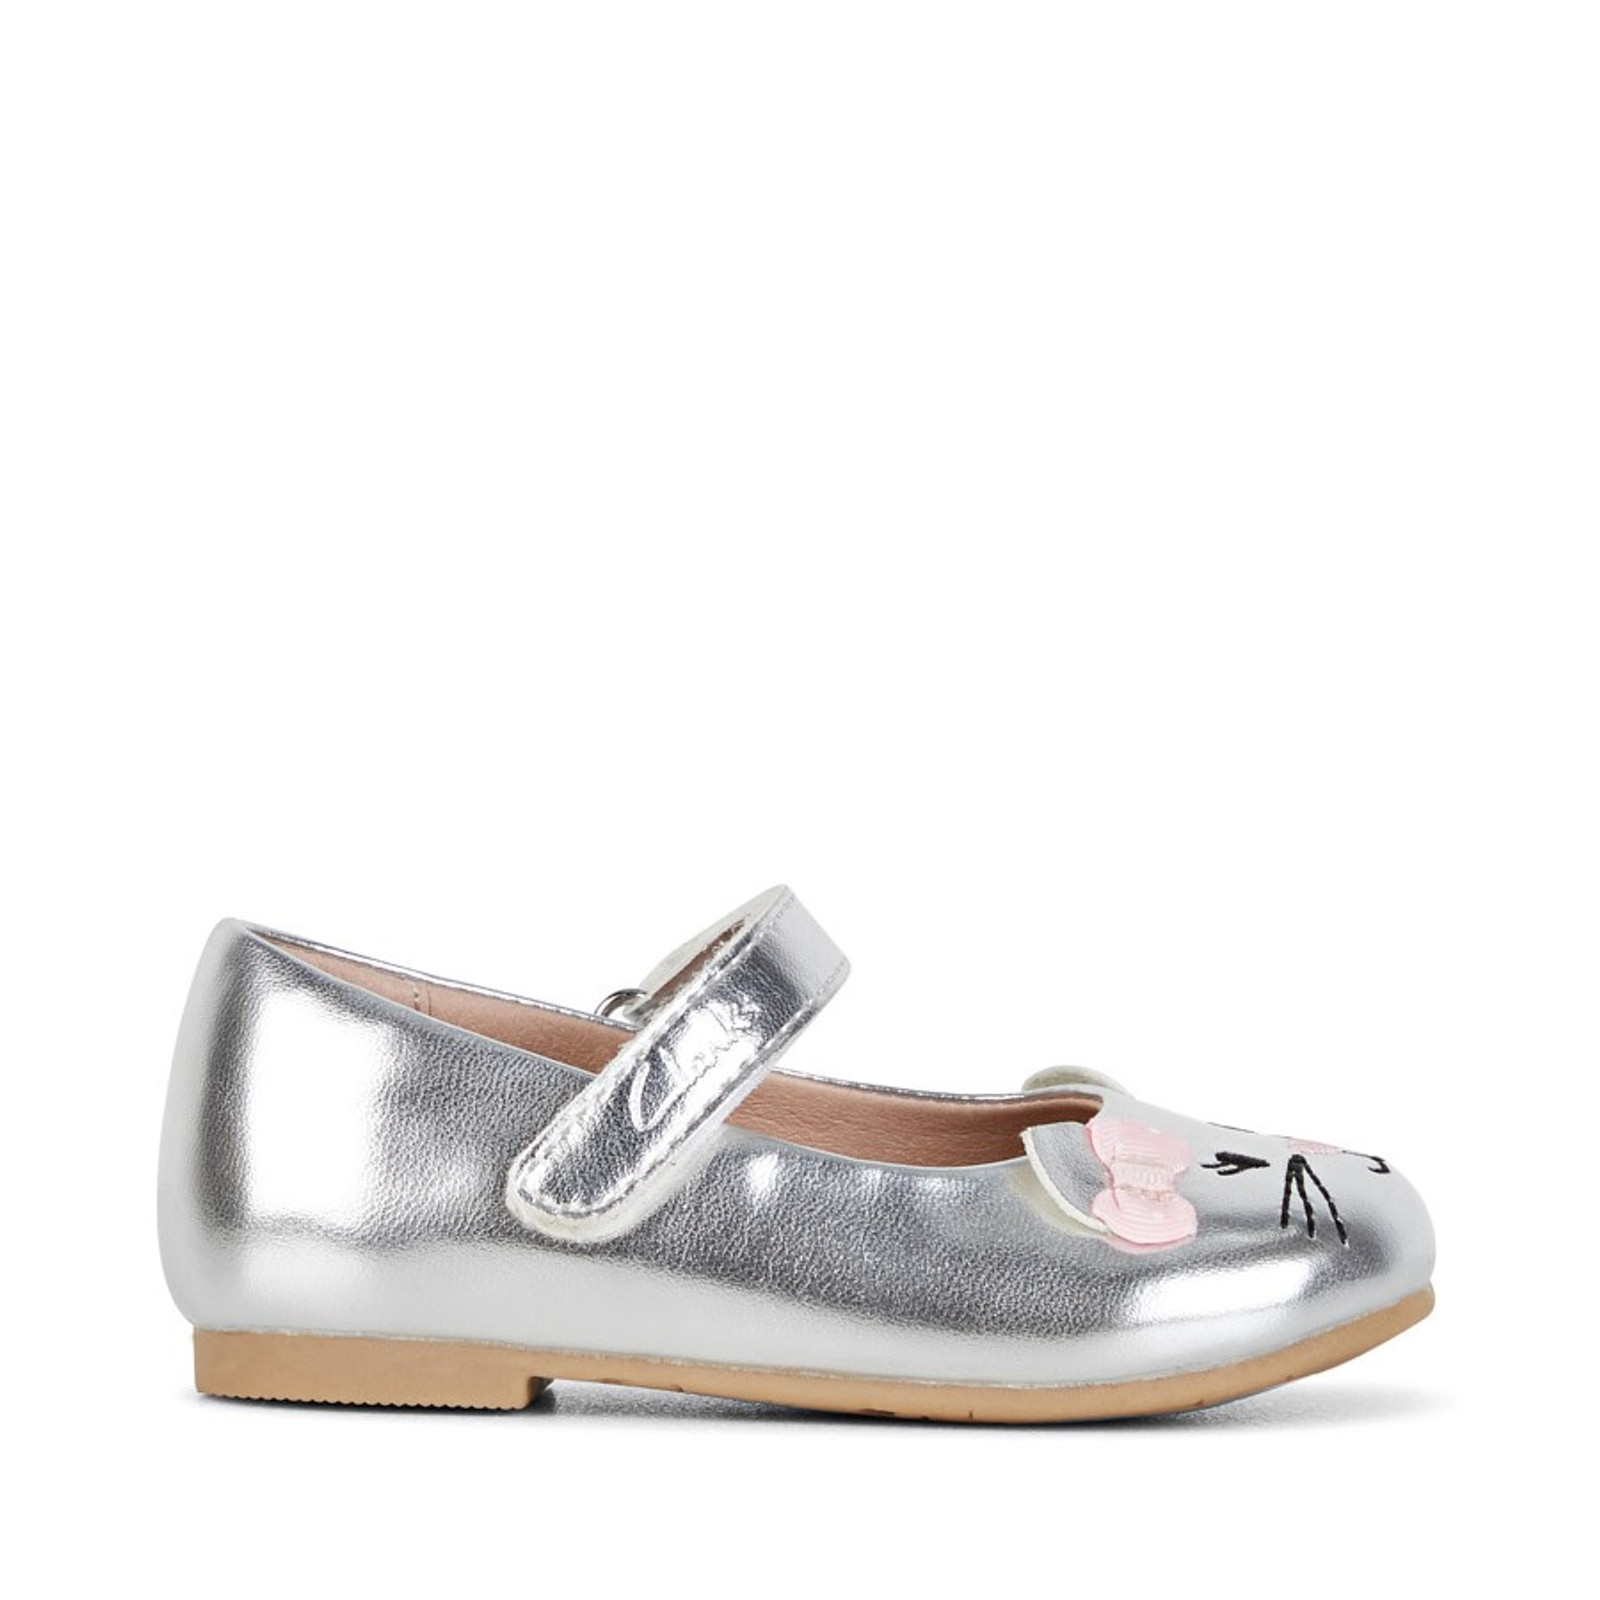 Clarks Girls ALICE Silver/Pink Bow